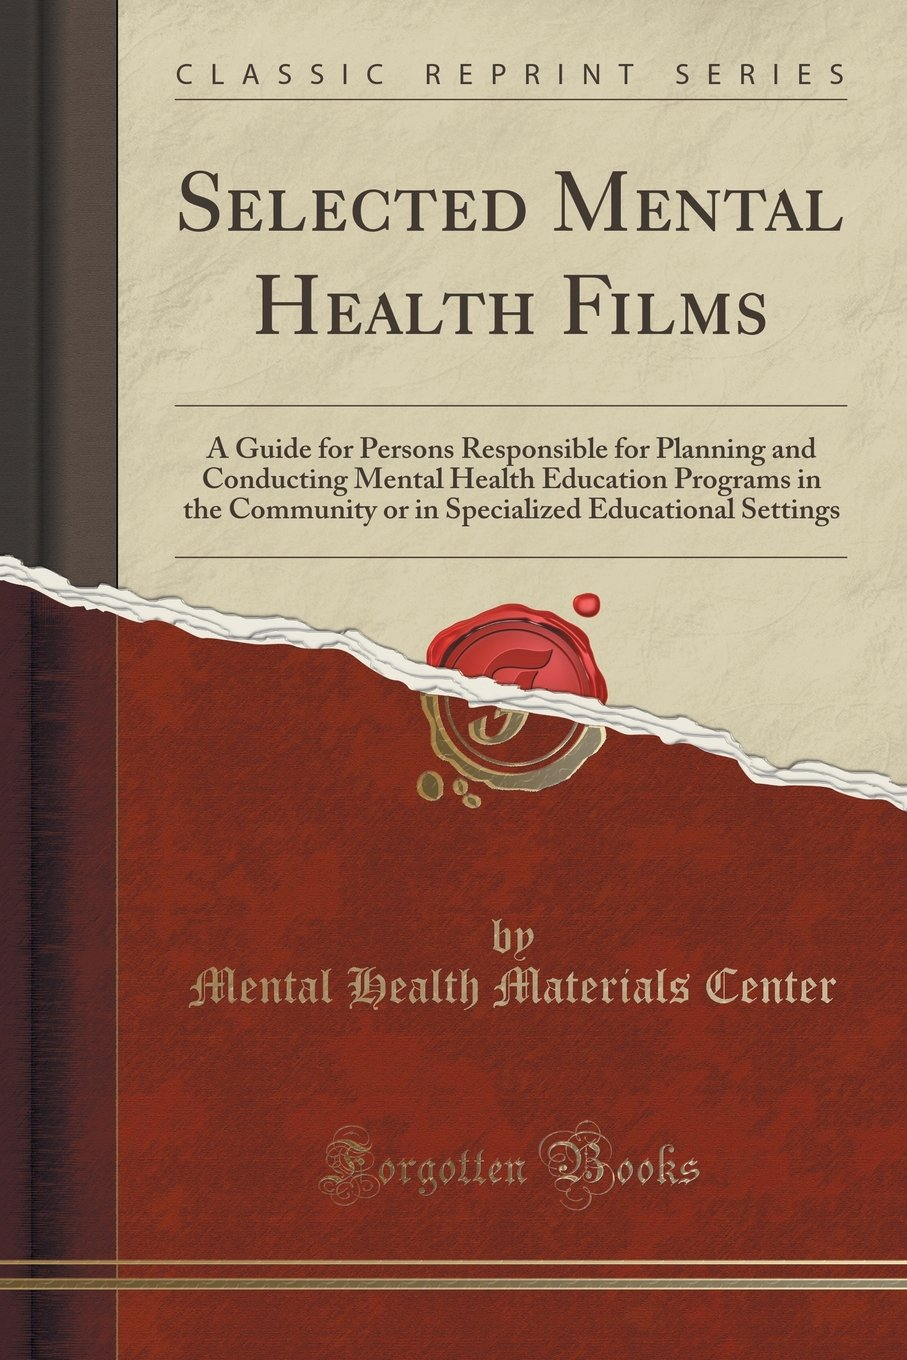 Selected Mental Health Films: A Guide for Persons Responsible for Planning and Conducting Mental Health Education Programs in the Community or in Specialized Educational Settings (Classic Reprint) pdf